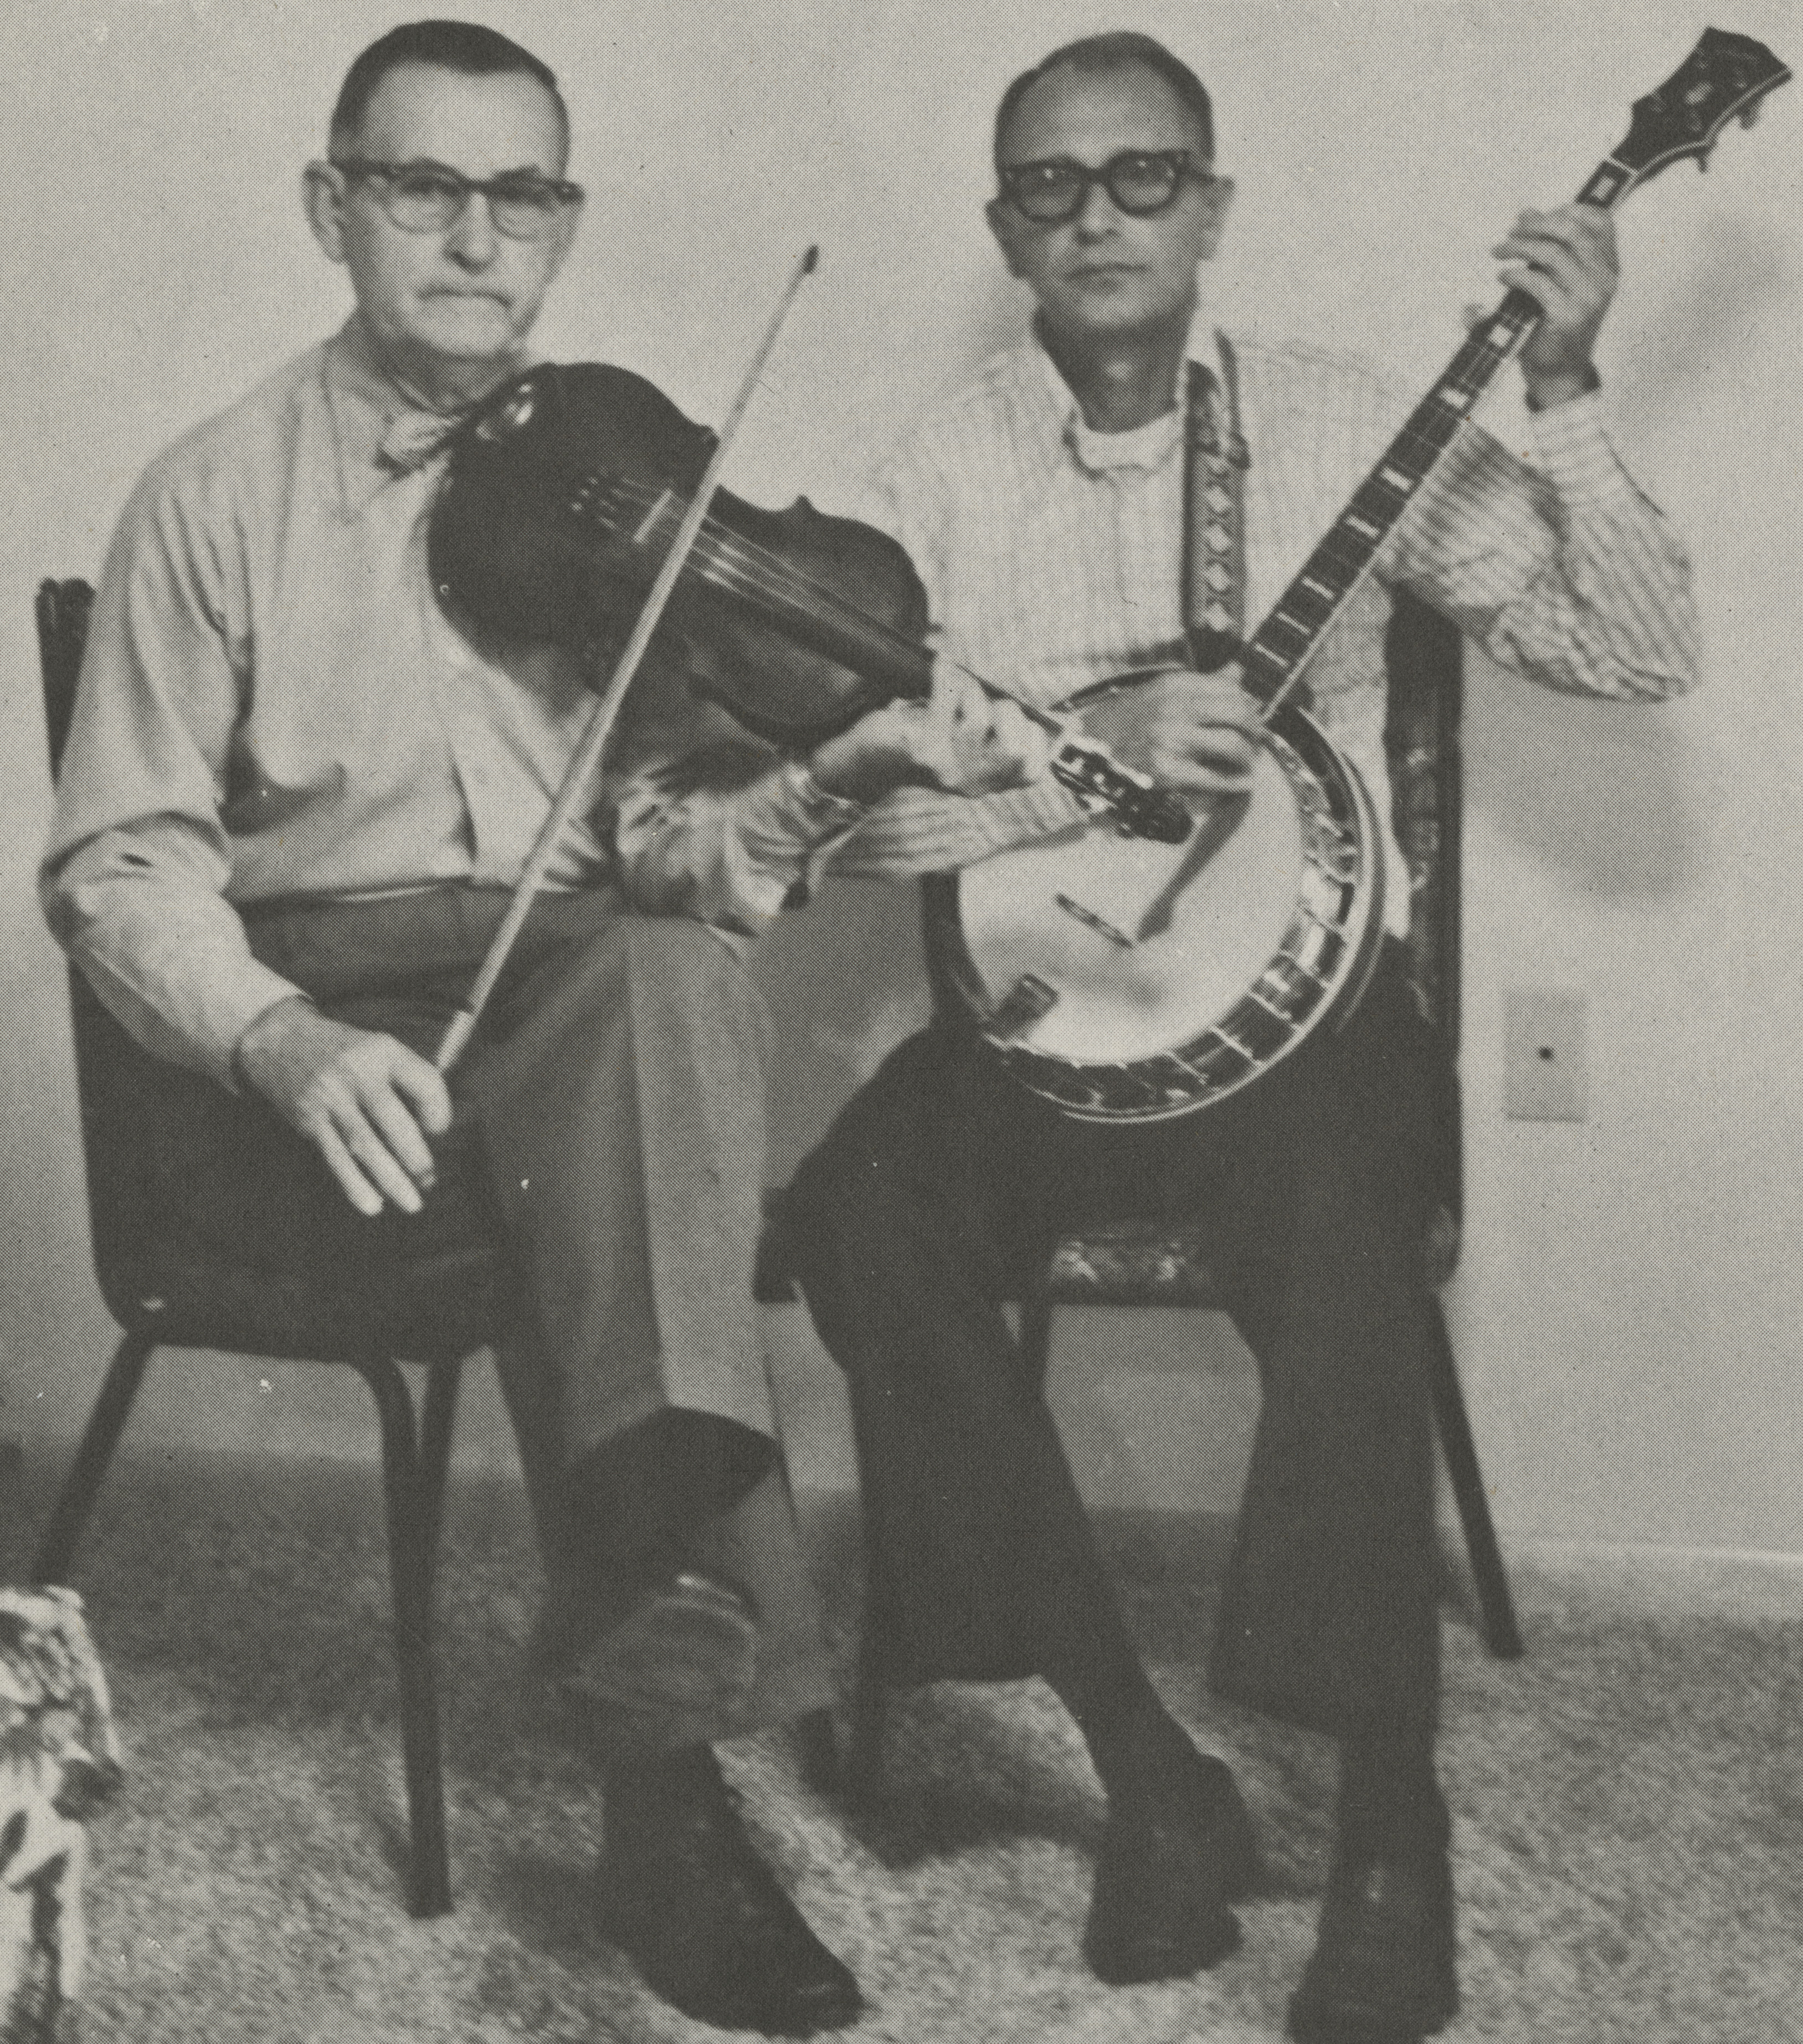 W.L. Gregory & Clyde Davenport